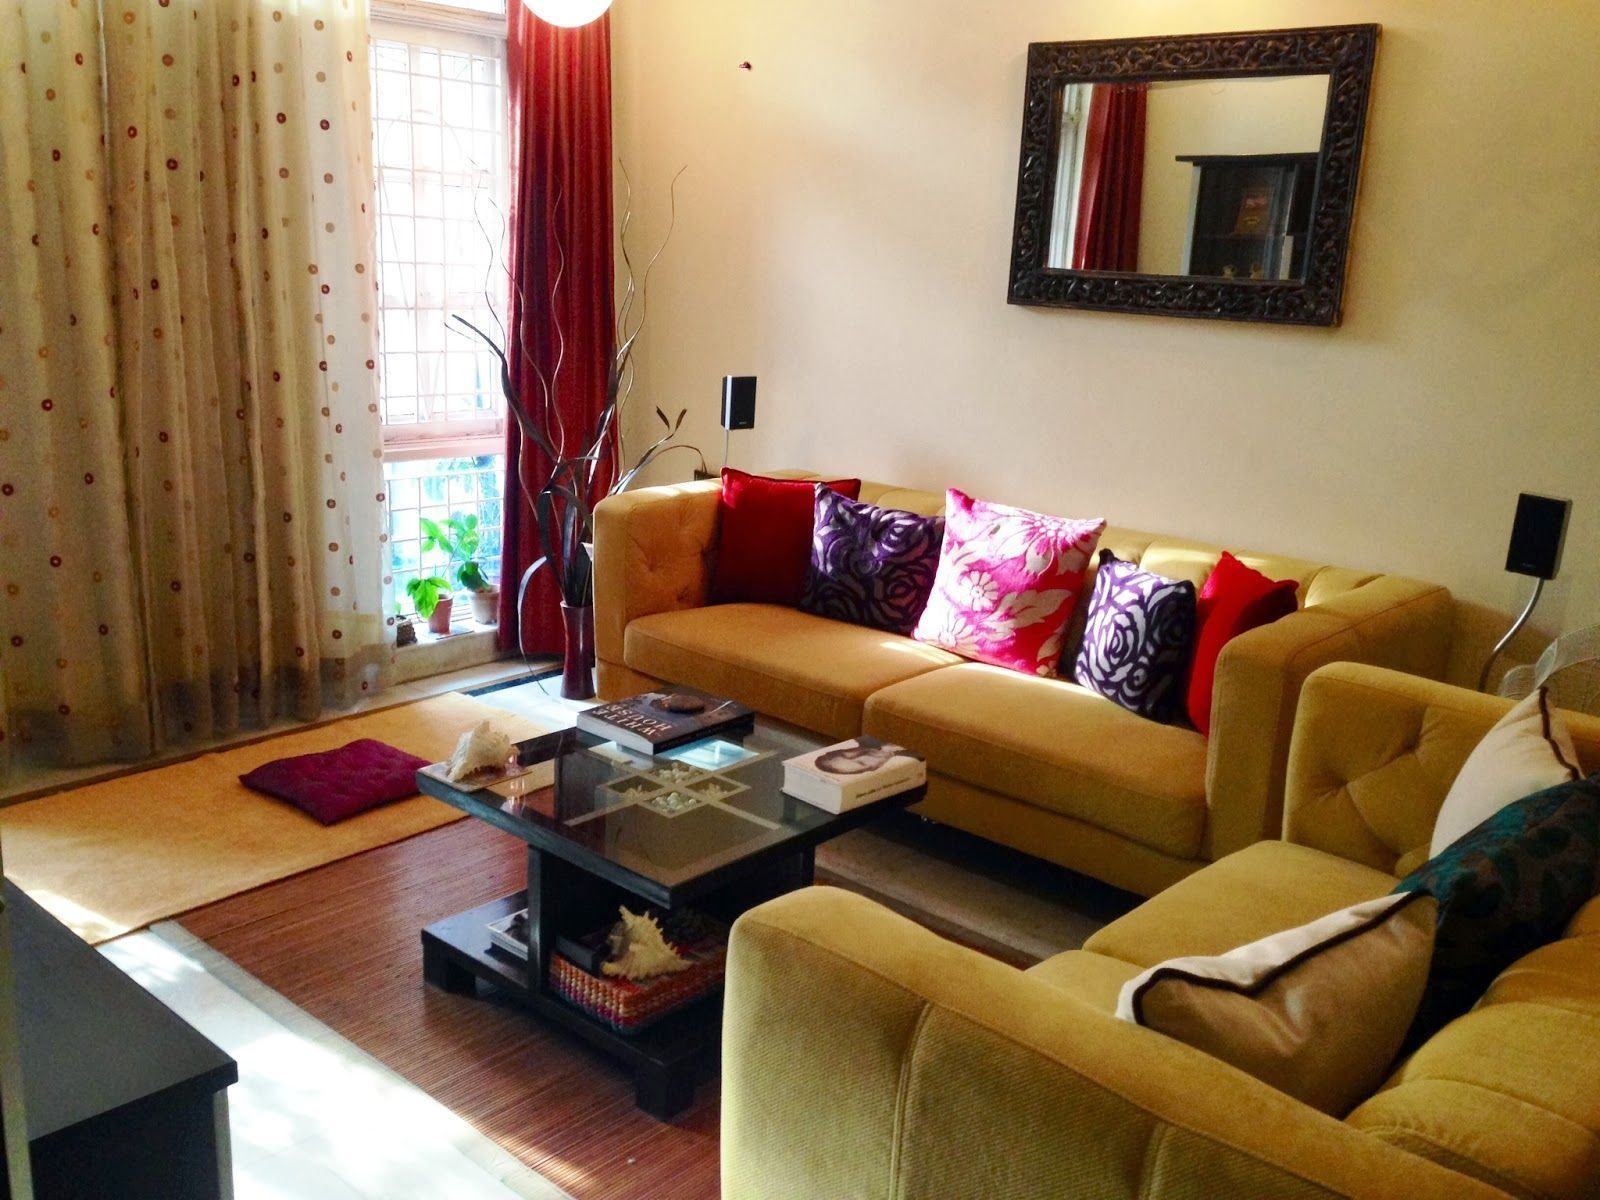 Home interior design kerala i discover my style  indian home in singapore indianhomedecor